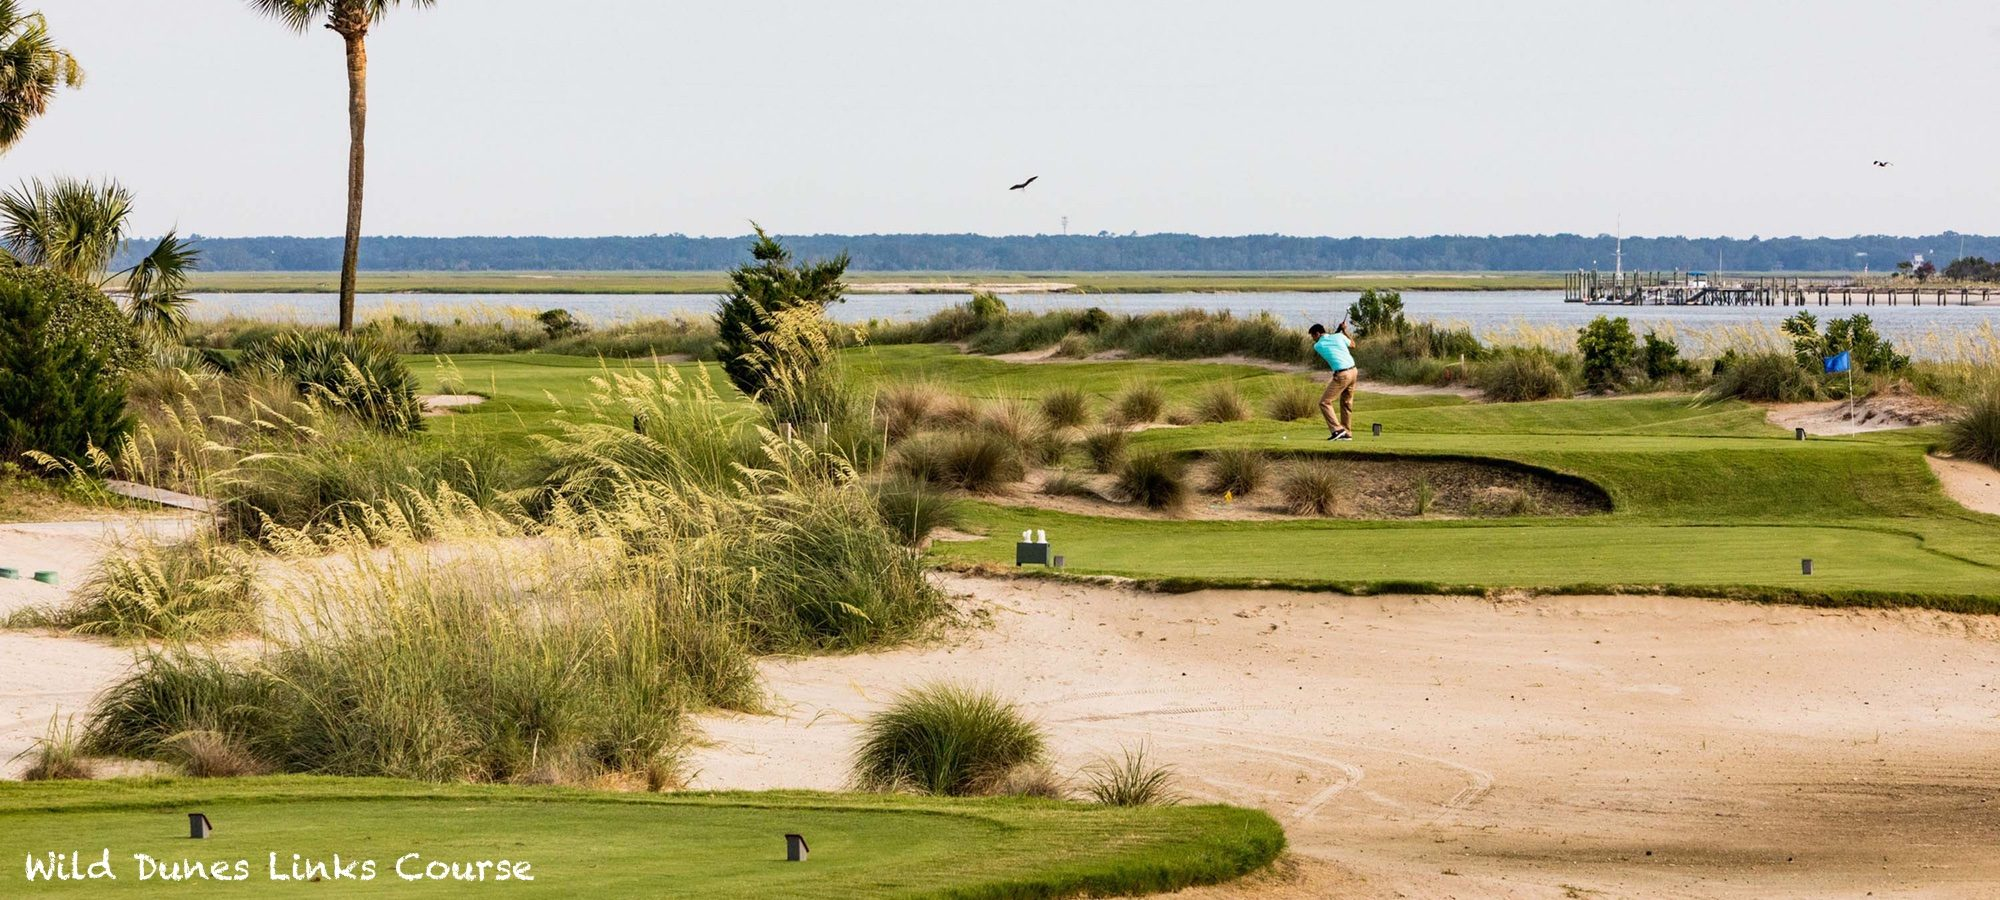 Wild Dunes Links Course